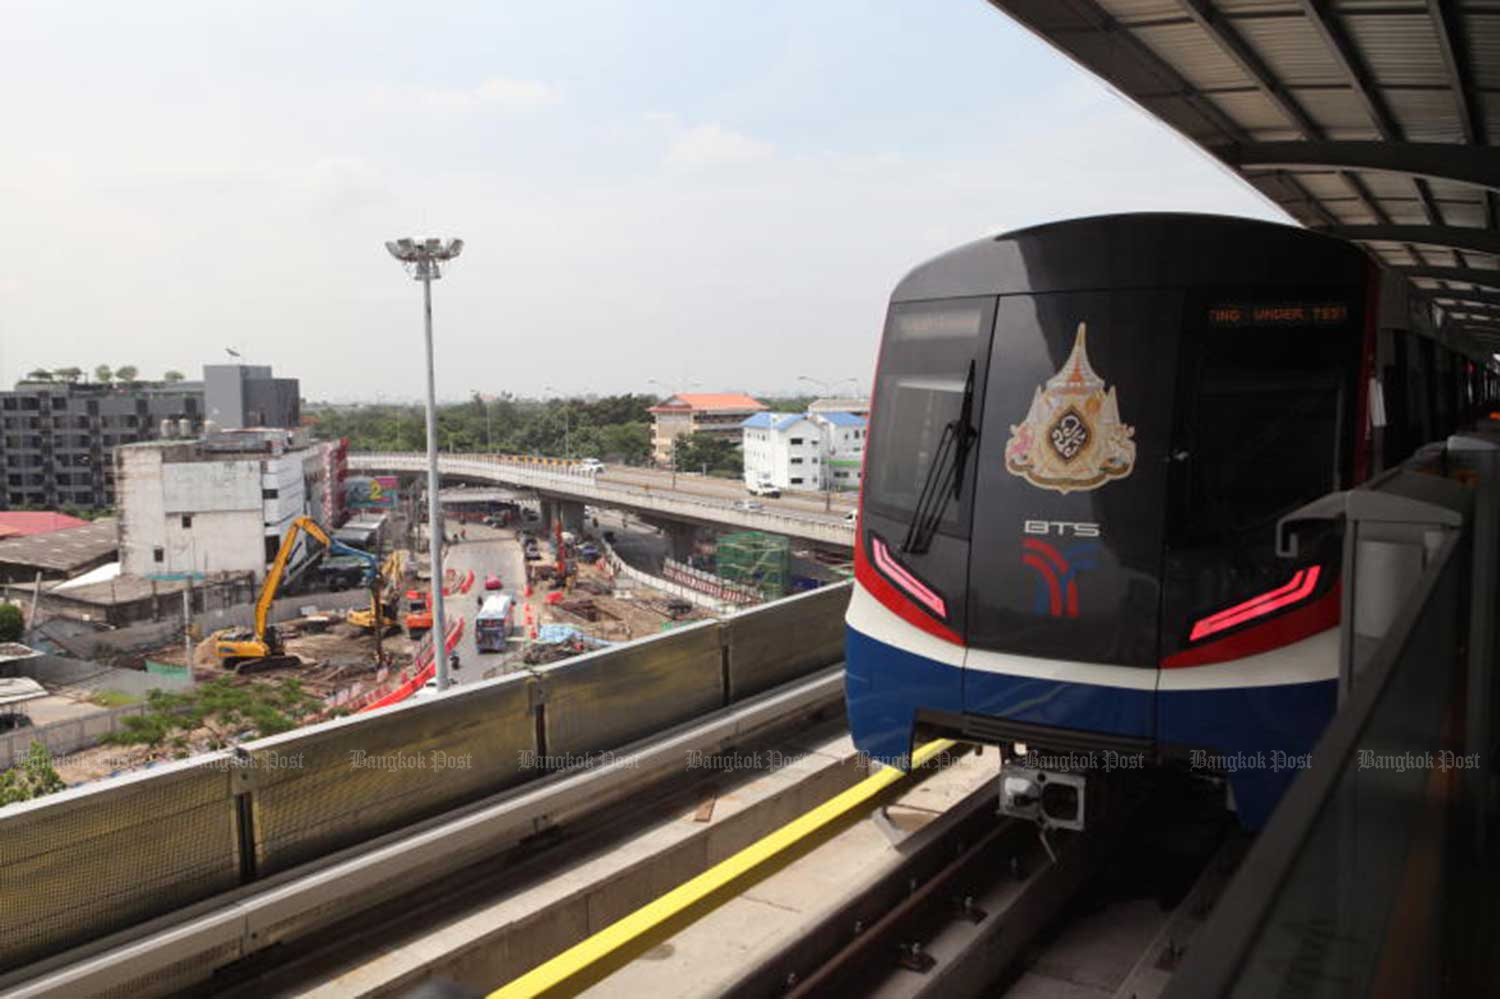 The new Green Line extension of the BTS skytrain has four stations - Royal Forest Department, Bang Sua, 11th Infantry Regiment and Wat Phra Sri Mahathat. It was opened on Friday. (Photo: Arnun Chonmahatrakool)